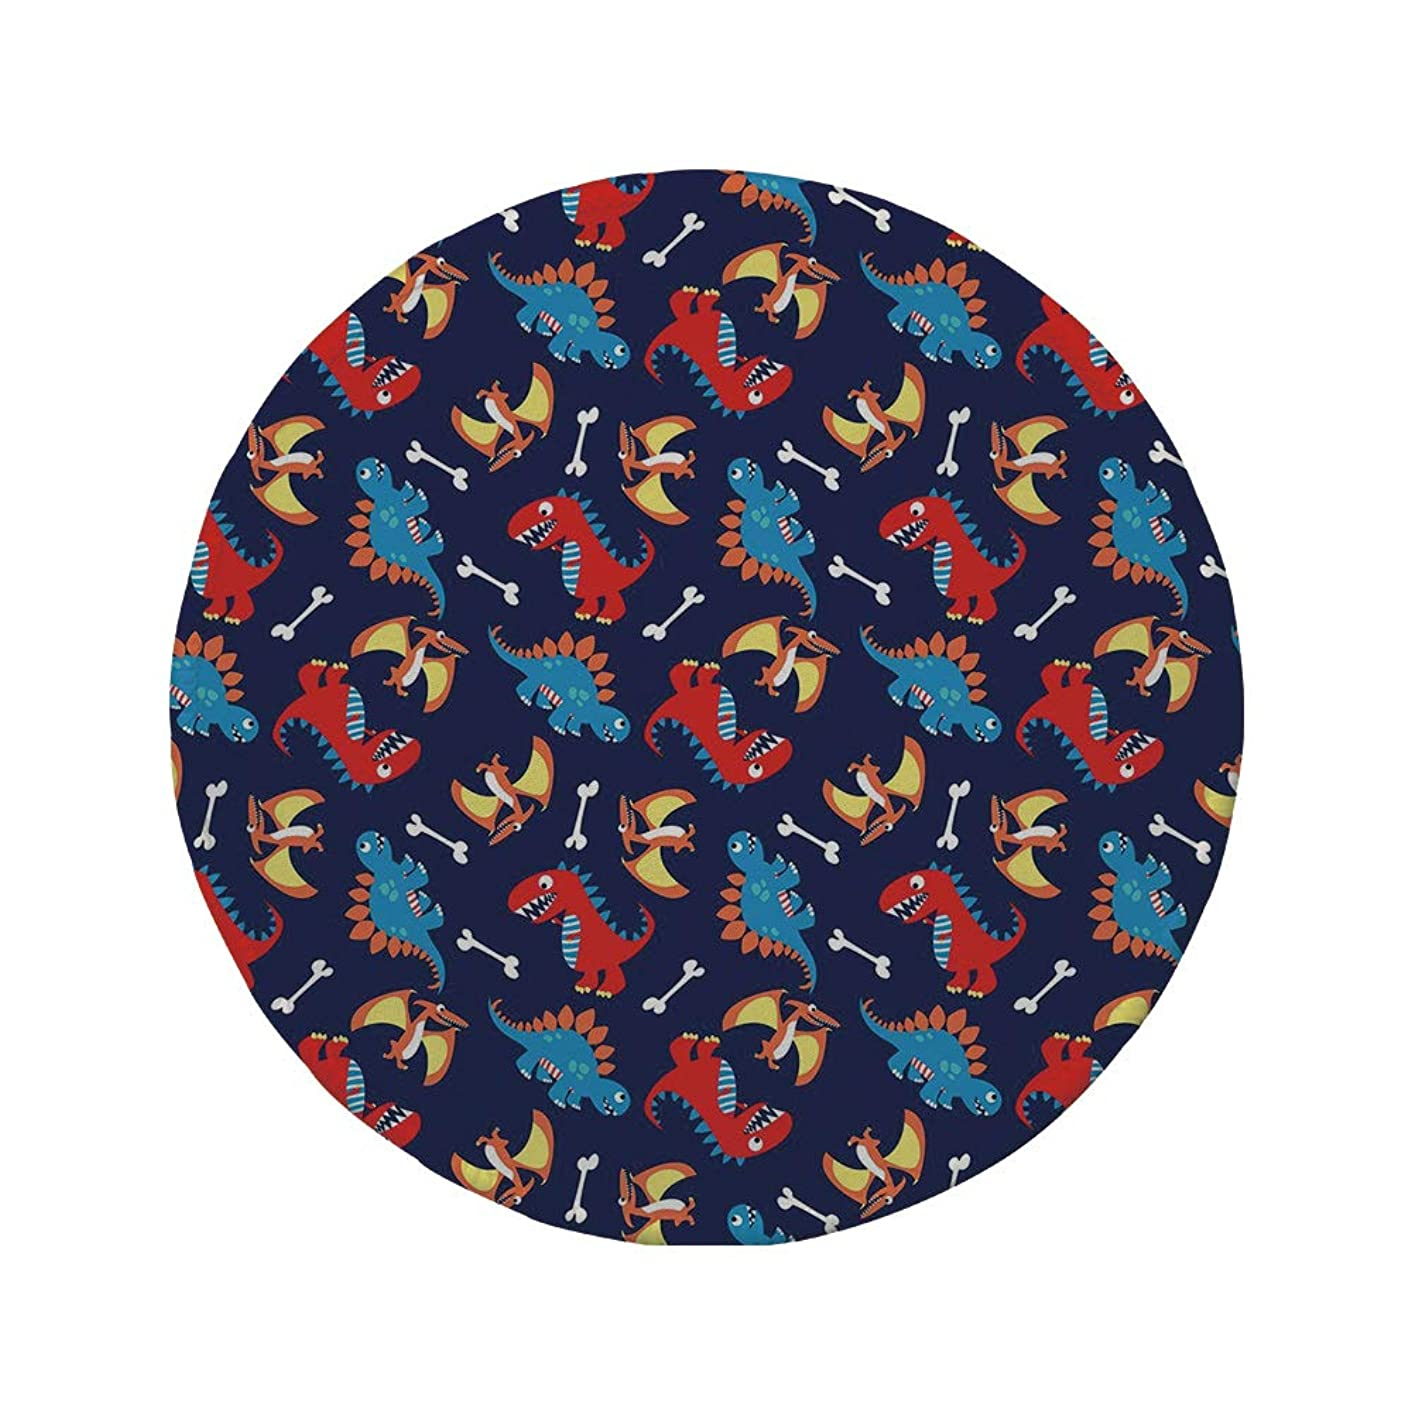 Non-Slip Rubber Round Mouse Pad,Dinosaur,Three Different Cartoon Dinosaurs Funny Expressions and Bones Kids Theme,Navy Blue Orange Red,7.87